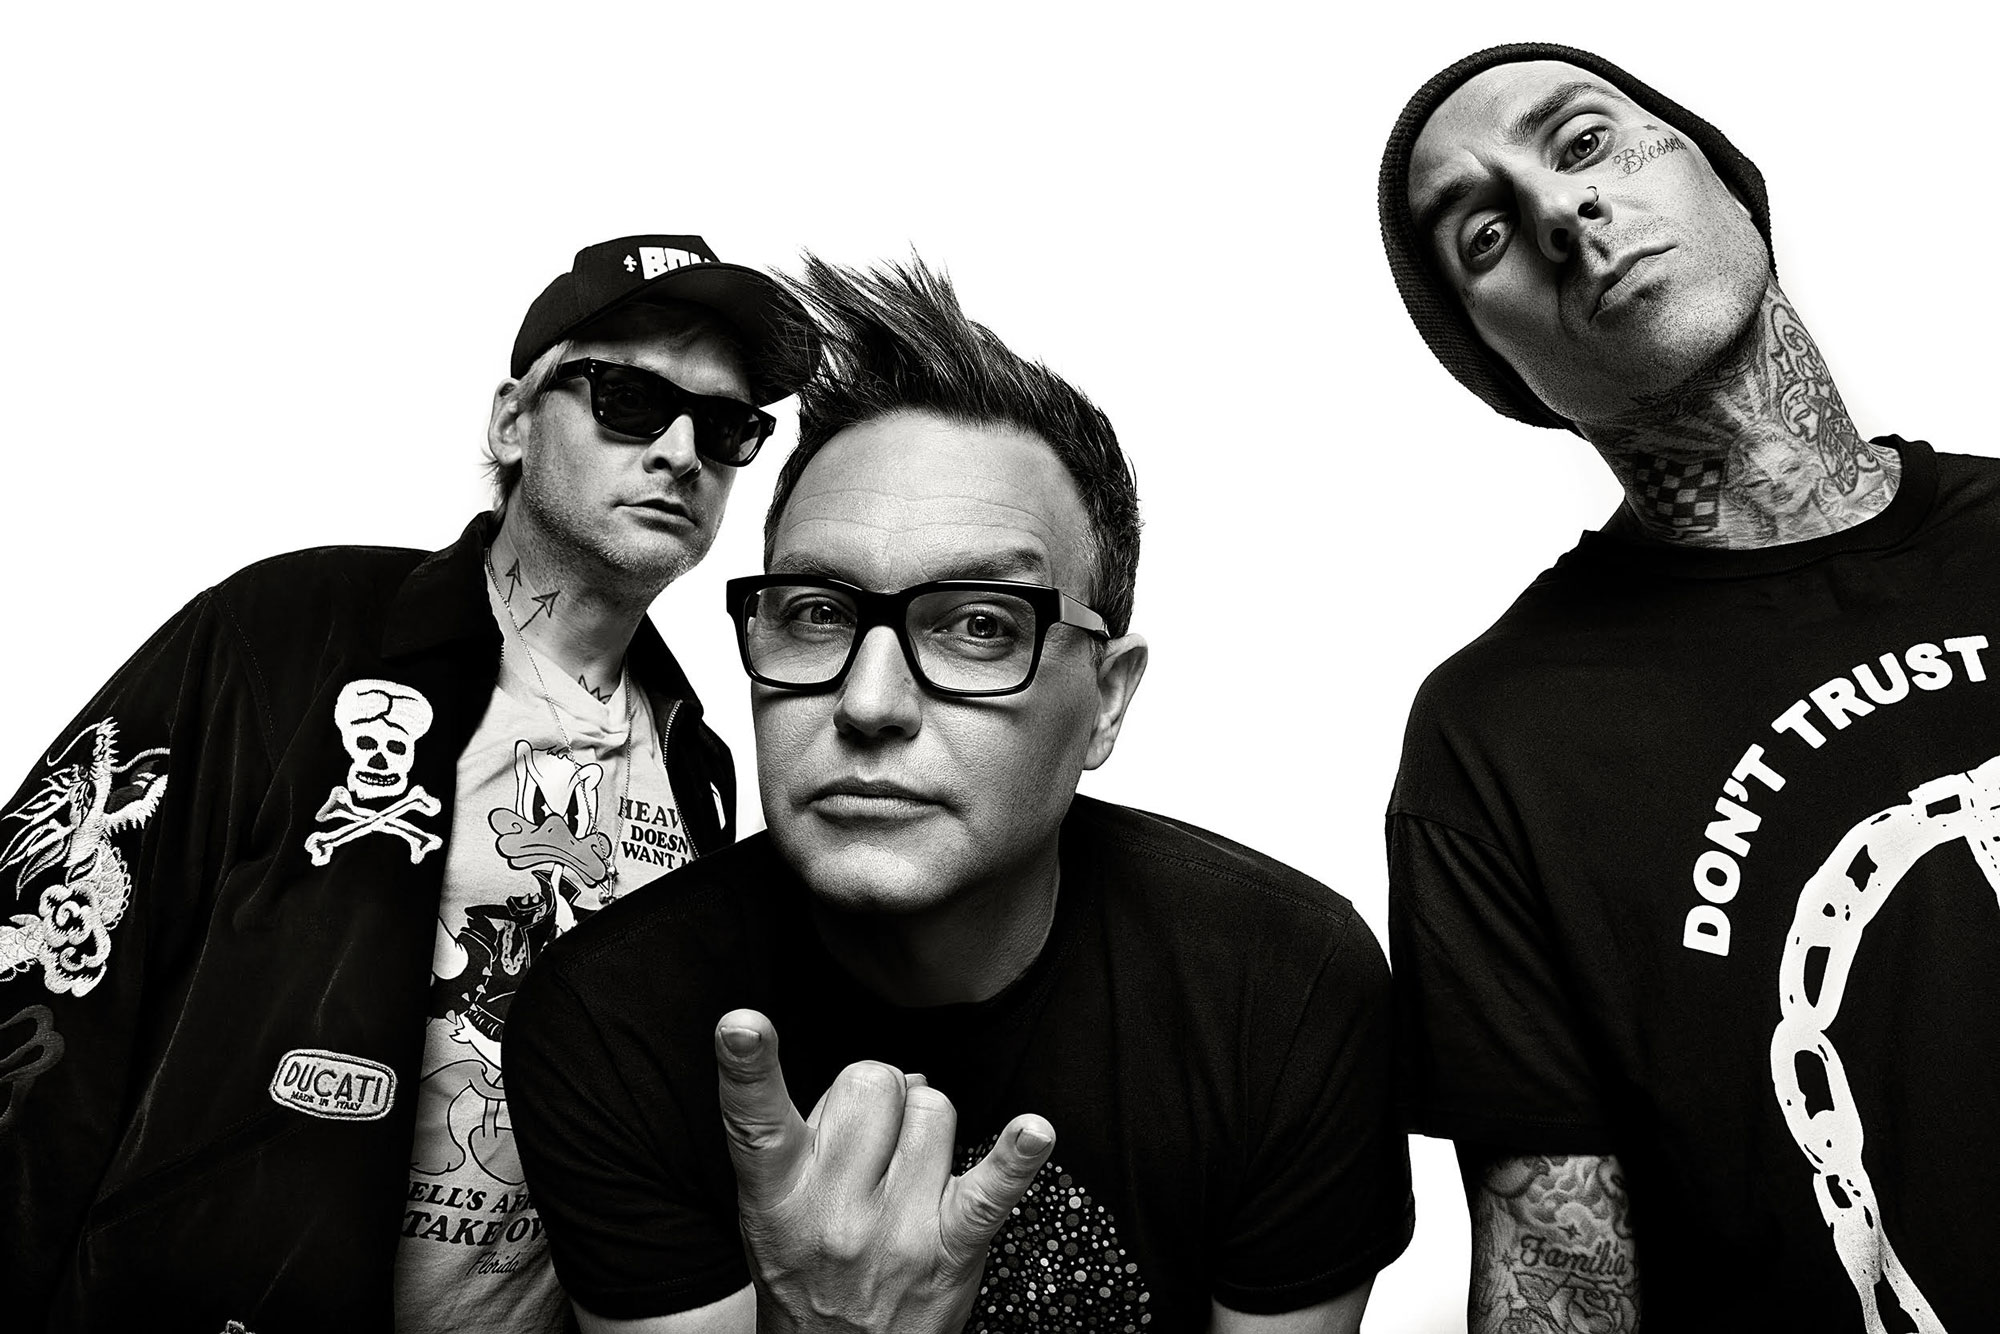 Blink-182 Are Back With New Album, 'NINE' - This Song Is Sick